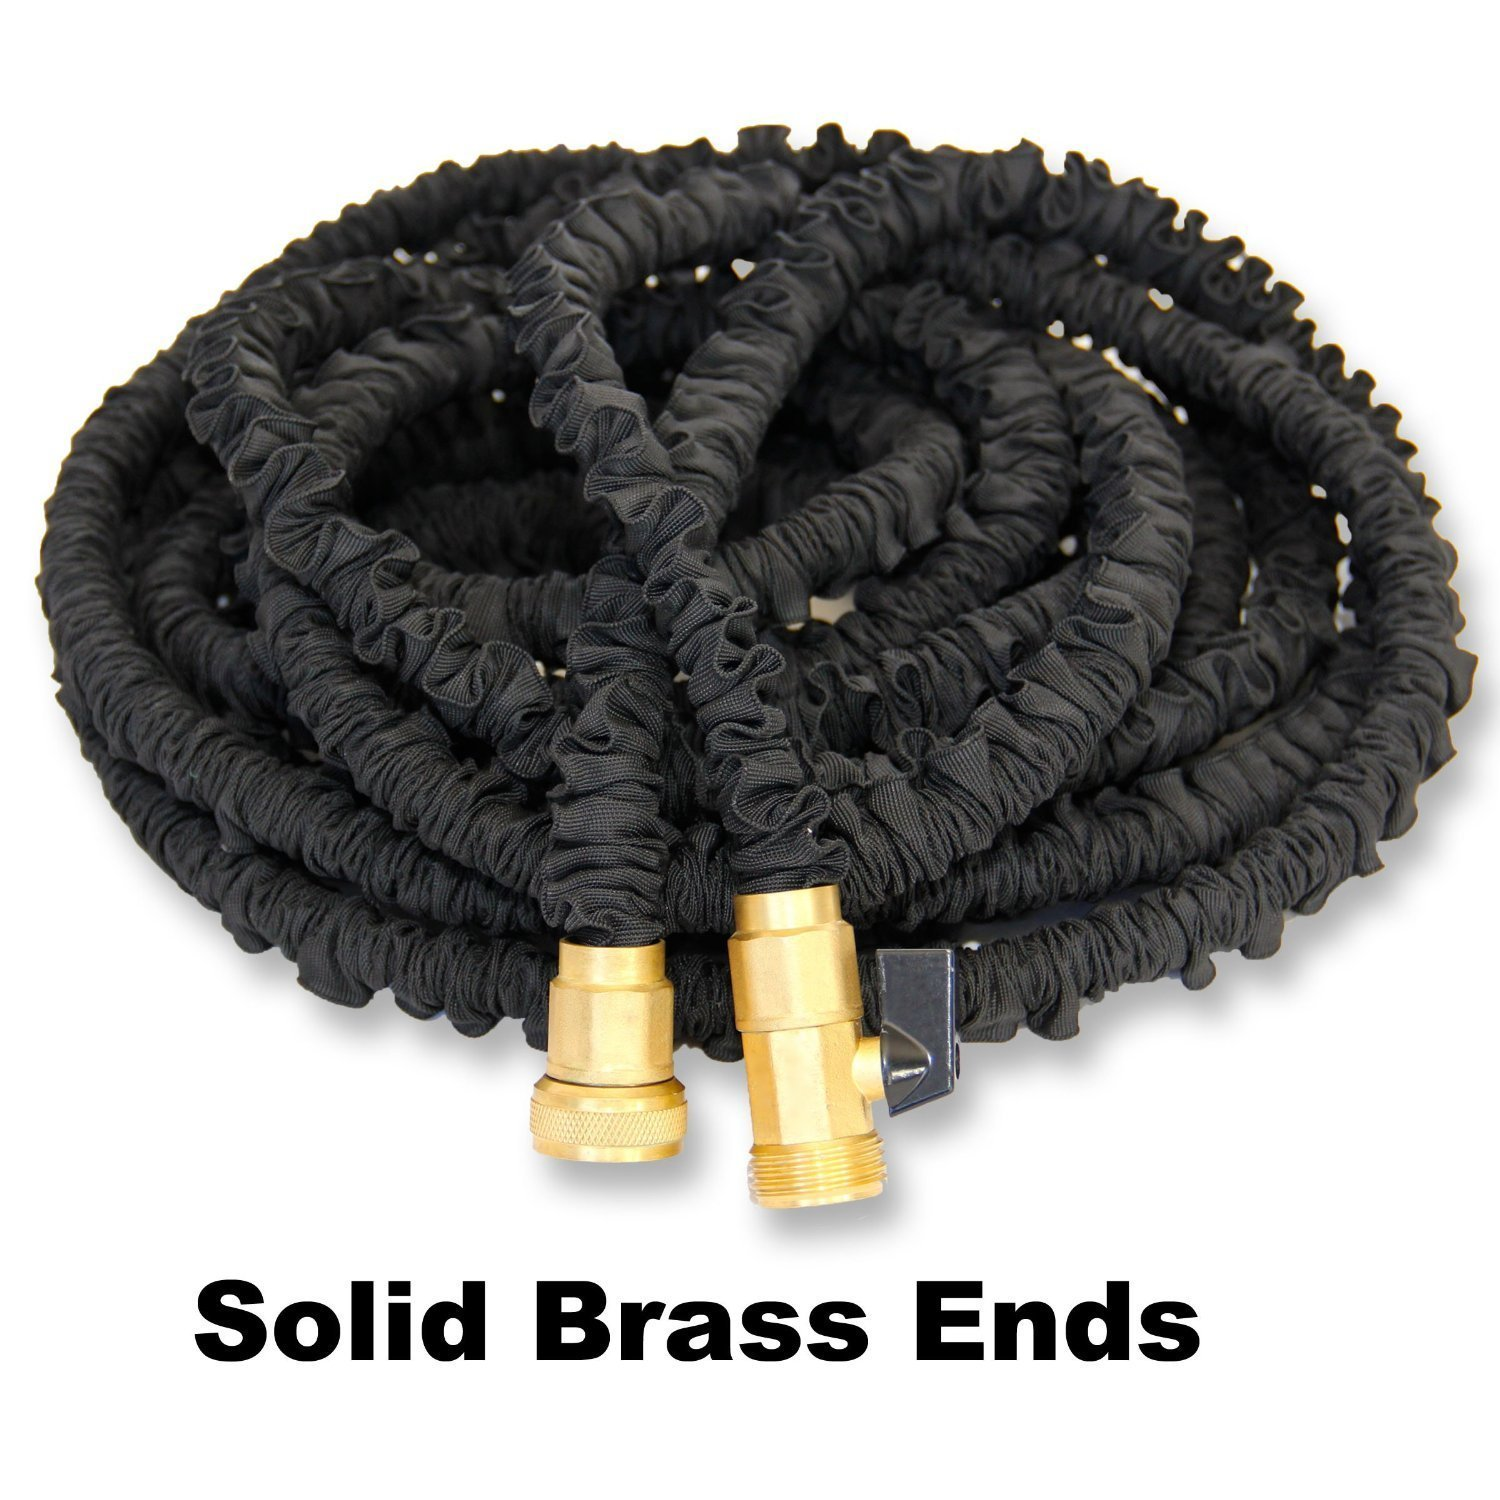 Marvelous Amazon.com : Black Mamba, Updated And Improved, 75u0027, Expanding Garden Hose,  Double Latex Core, Reinforced Fabric Cover, Brass Fittings, Includes 8  Position ...